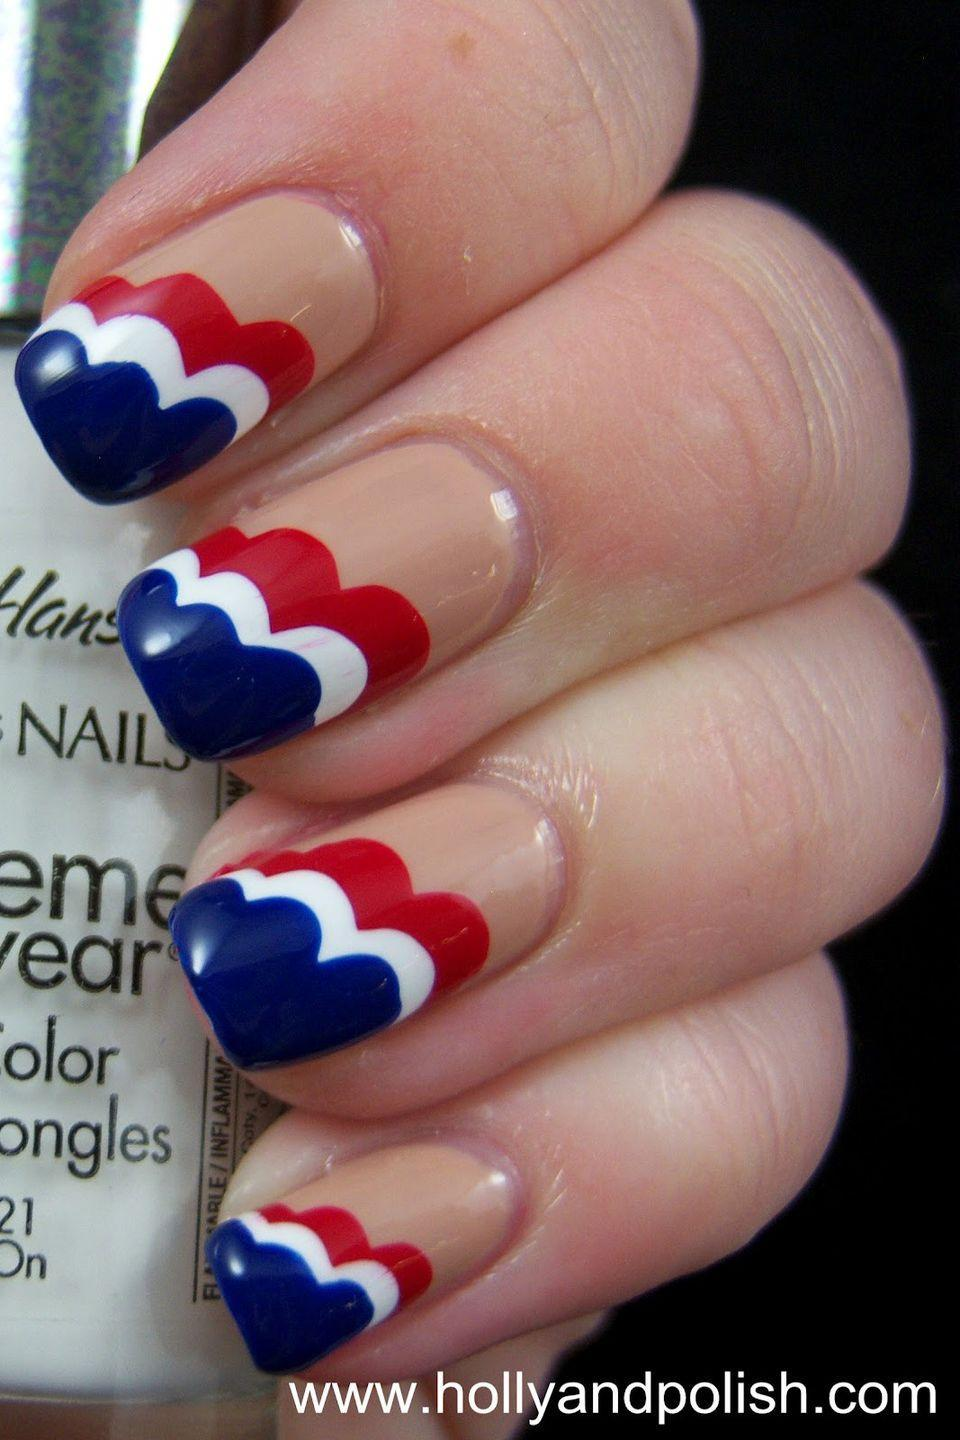 """<p>Start with a <a href=""""https://www.goodhousekeeping.com/beauty/nails/tips/g1627/nude-manicure-nail-art-upgrades/"""" rel=""""nofollow noopener"""" target=""""_blank"""" data-ylk=""""slk:nude base"""" class=""""link rapid-noclick-resp"""">nude base</a> for this manicure for a more demure vibe — and then mix in America's favorite hues for a splash of preppy patriotism.</p><p><a class=""""link rapid-noclick-resp"""" href=""""https://www.amazon.com/OPI-Nail-Lacquer-Samoan-Sand/dp/B004223VIK/?tag=syn-yahoo-20&ascsubtag=%5Bartid%7C10055.g.1278%5Bsrc%7Cyahoo-us"""" rel=""""nofollow noopener"""" target=""""_blank"""" data-ylk=""""slk:SHOP NUDE POLISH"""">SHOP NUDE POLISH</a></p><p><a href=""""http://www.hollyandpolish.com/2012/07/american-cloud-nails.html"""" rel=""""nofollow noopener"""" target=""""_blank"""" data-ylk=""""slk:See more on Holly & Polish »"""" class=""""link rapid-noclick-resp""""><em>See more on Holly & Polish »</em></a></p>"""